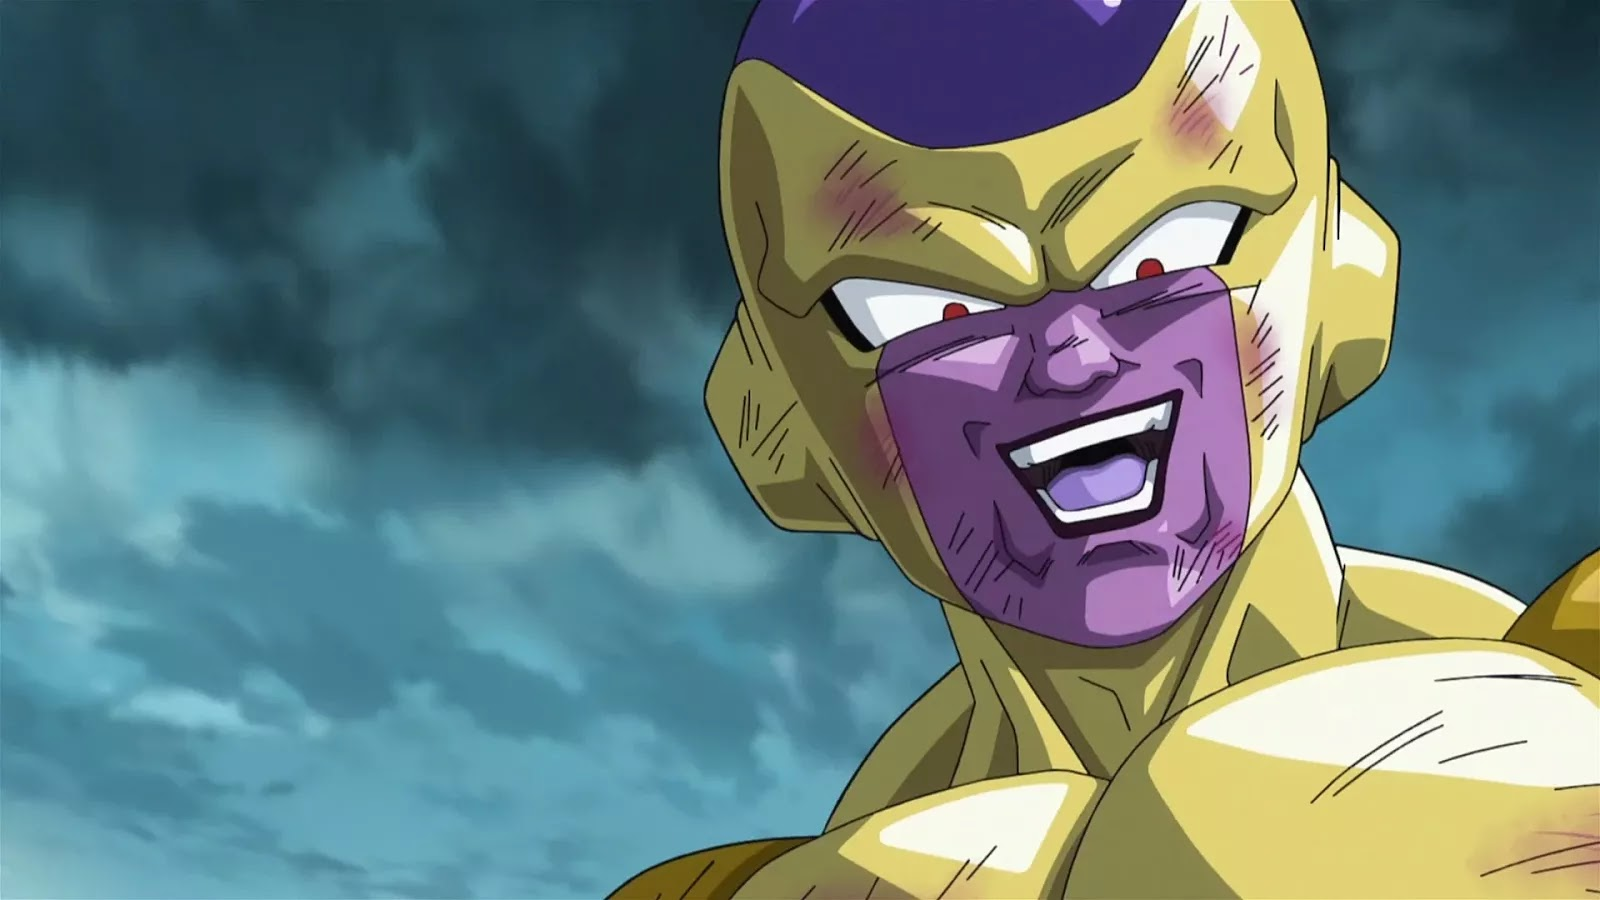 Frieza To Team Up With Goku In Universe Survival Arc And Female